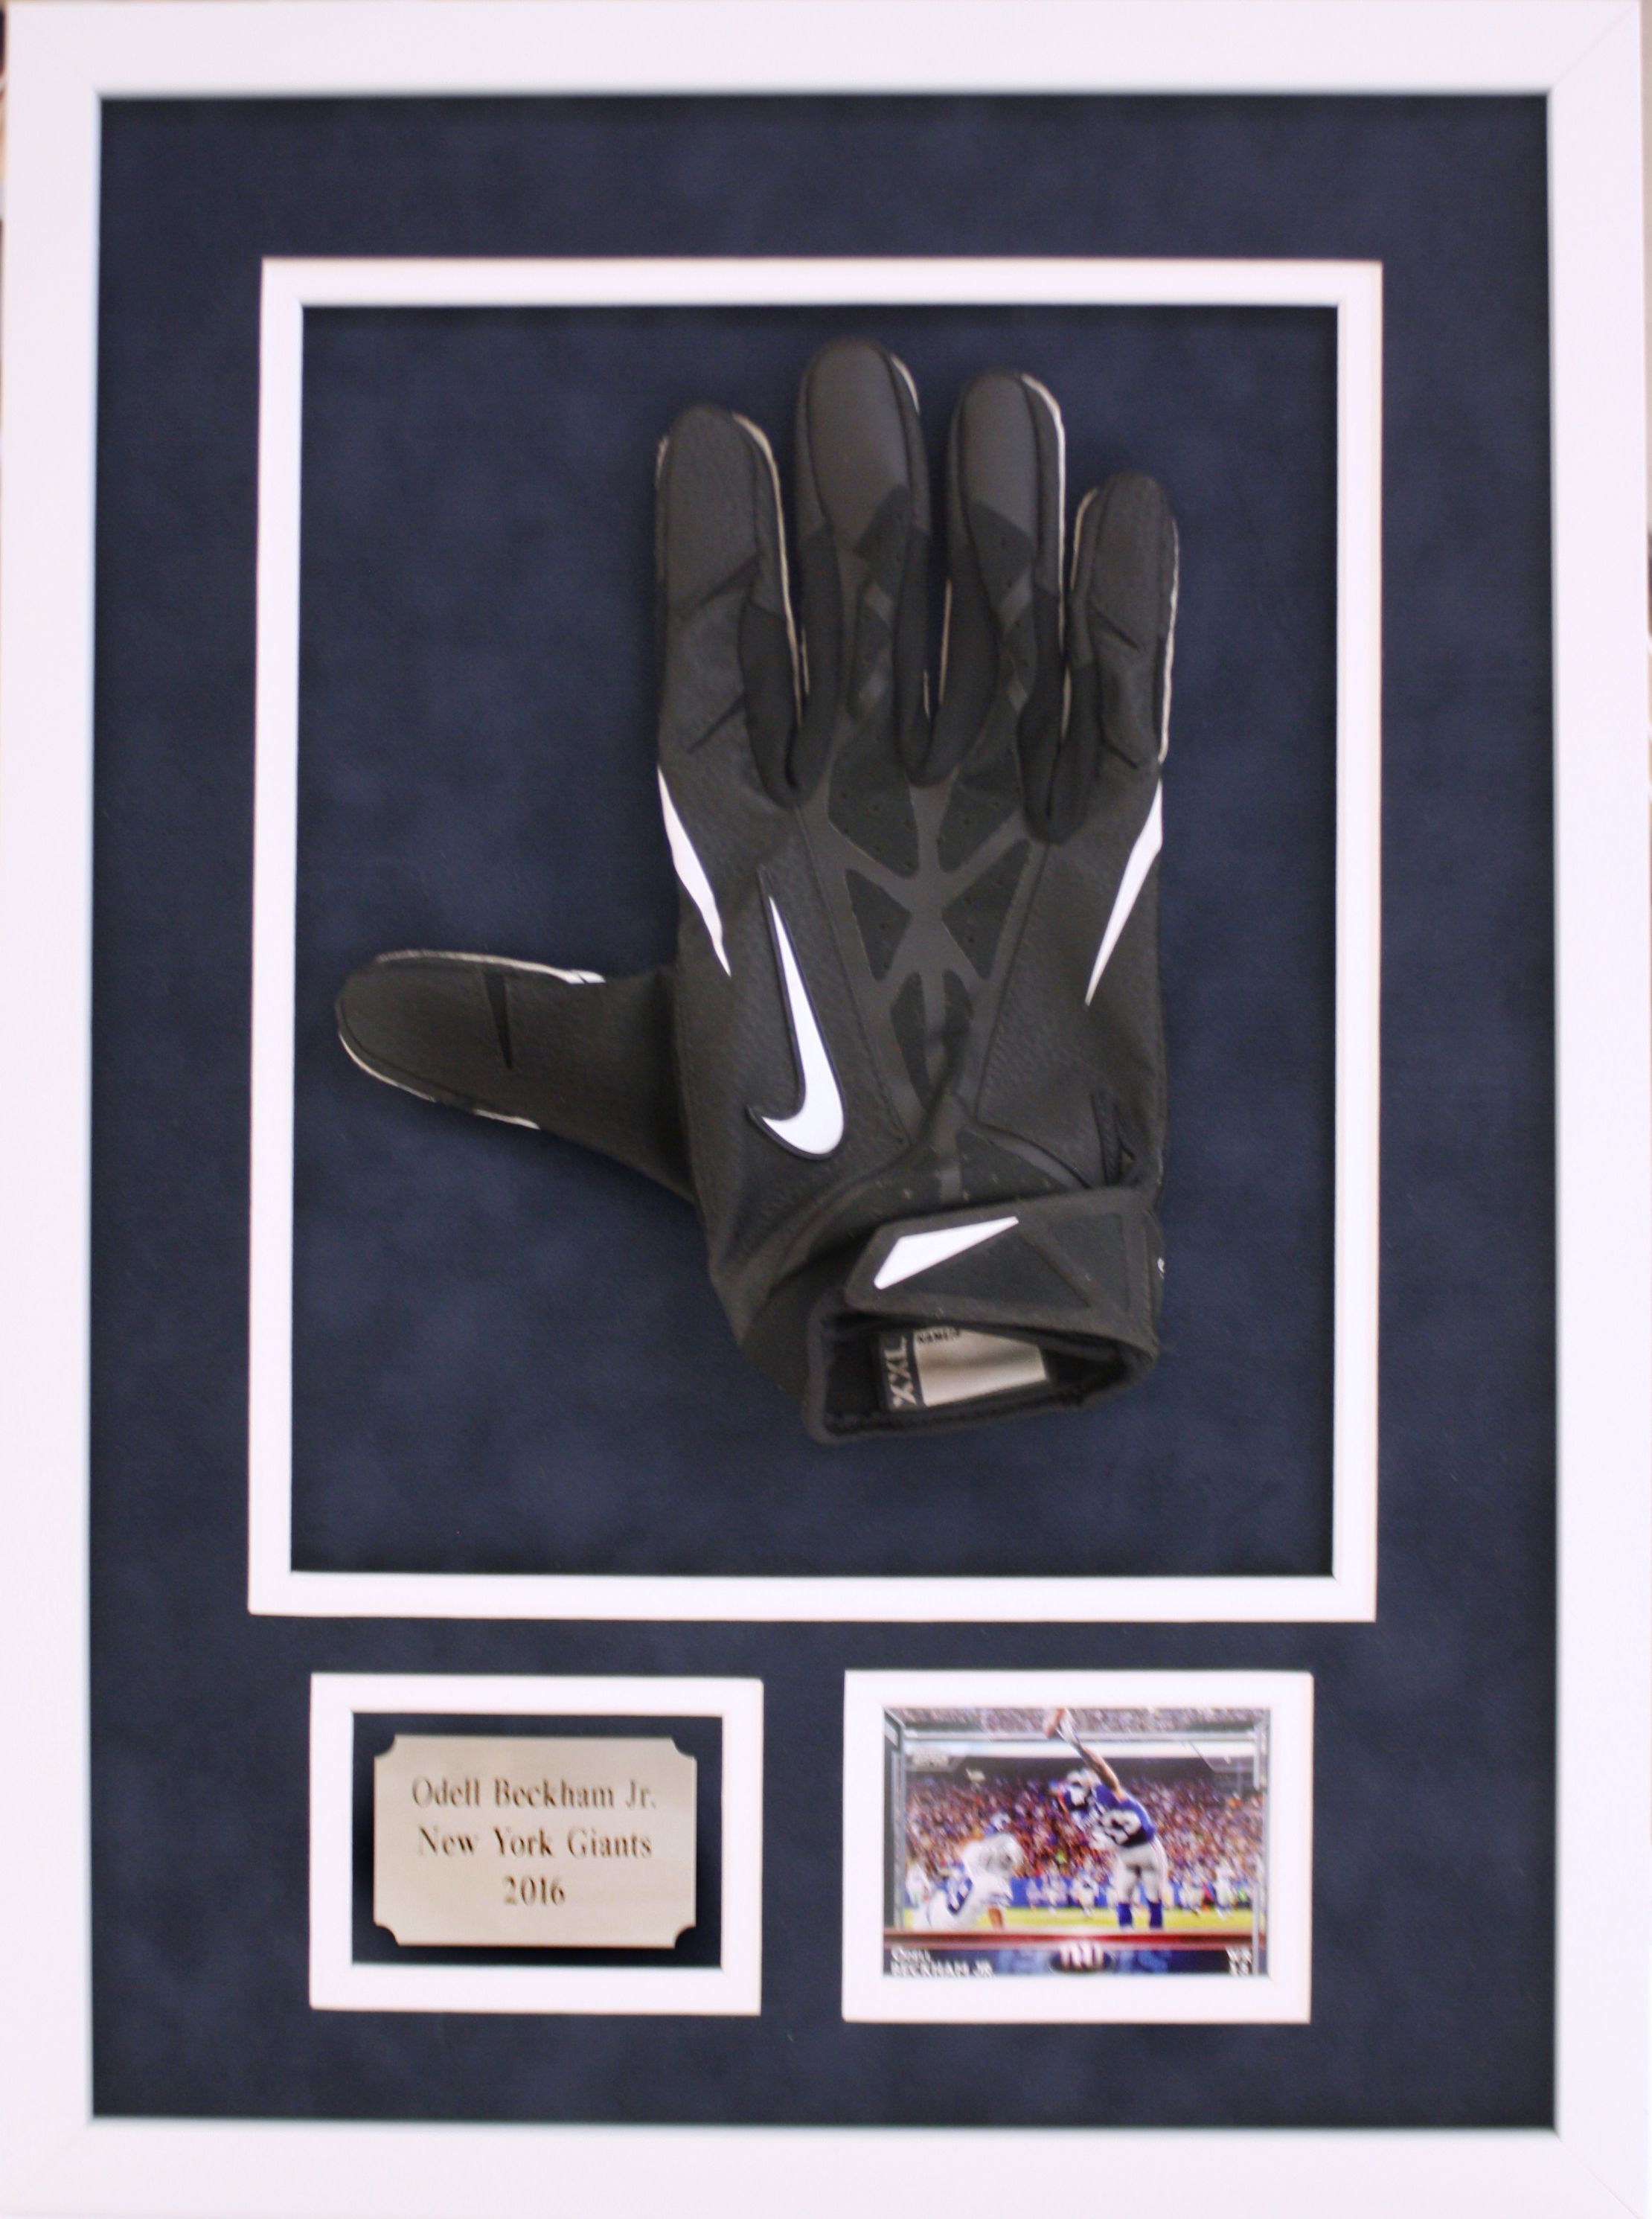 cheaper 8b57a 9412e Odell Beckham Jr. Football glove with picture and name plate ...